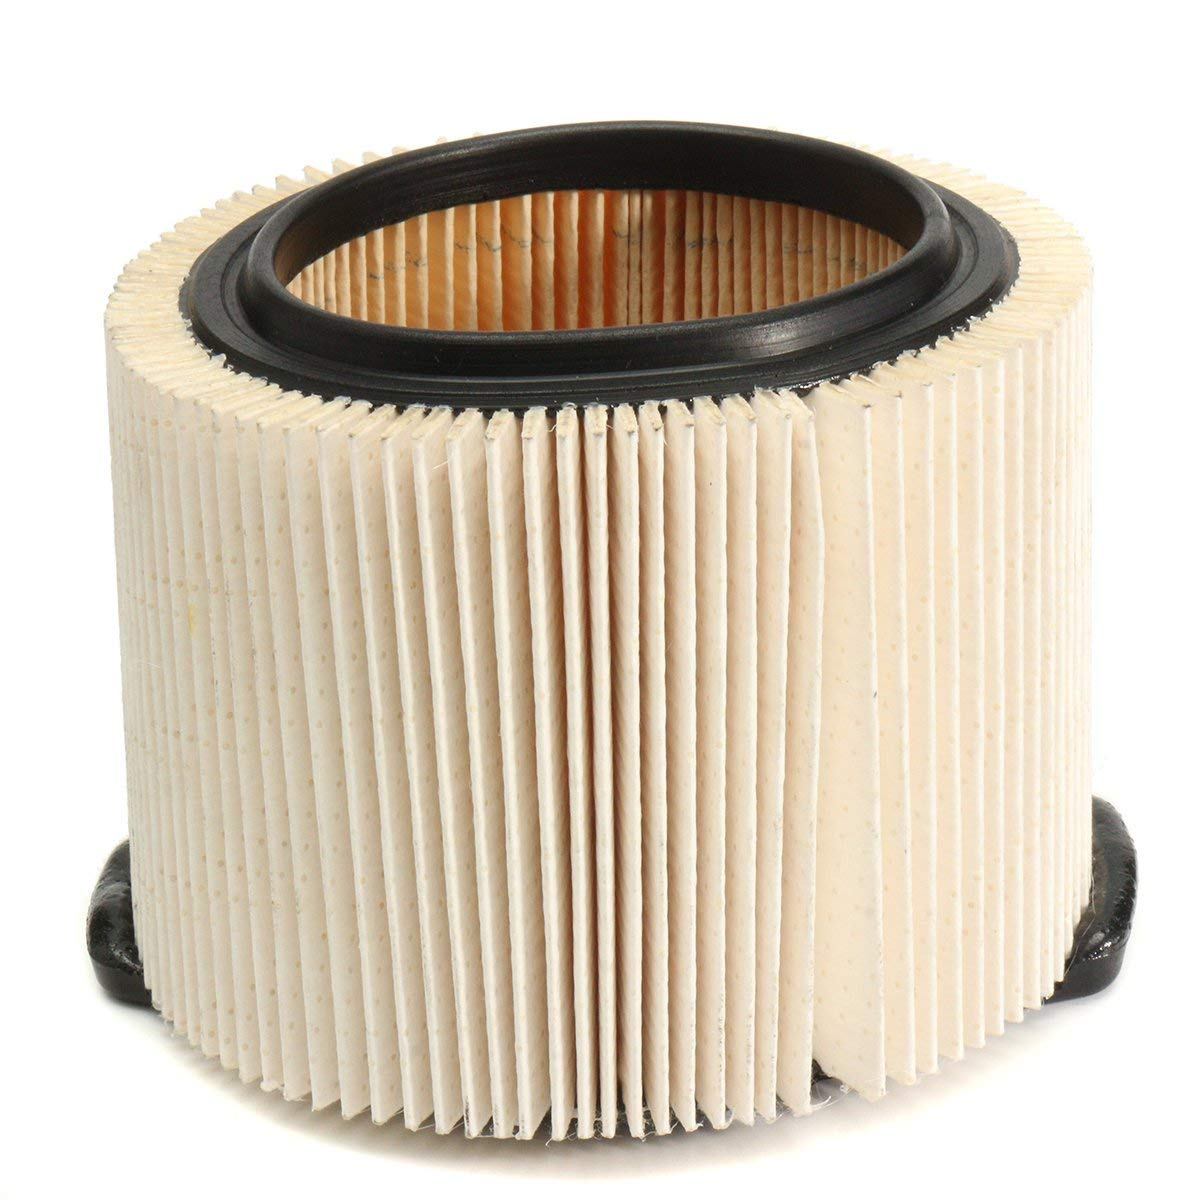 HITSAN 3-Layer Fine Vacuum Dust Replacement Filter Wet Dry Vac Filter for RIDGID VF3500 3 to 4.5 Gallon One Piece